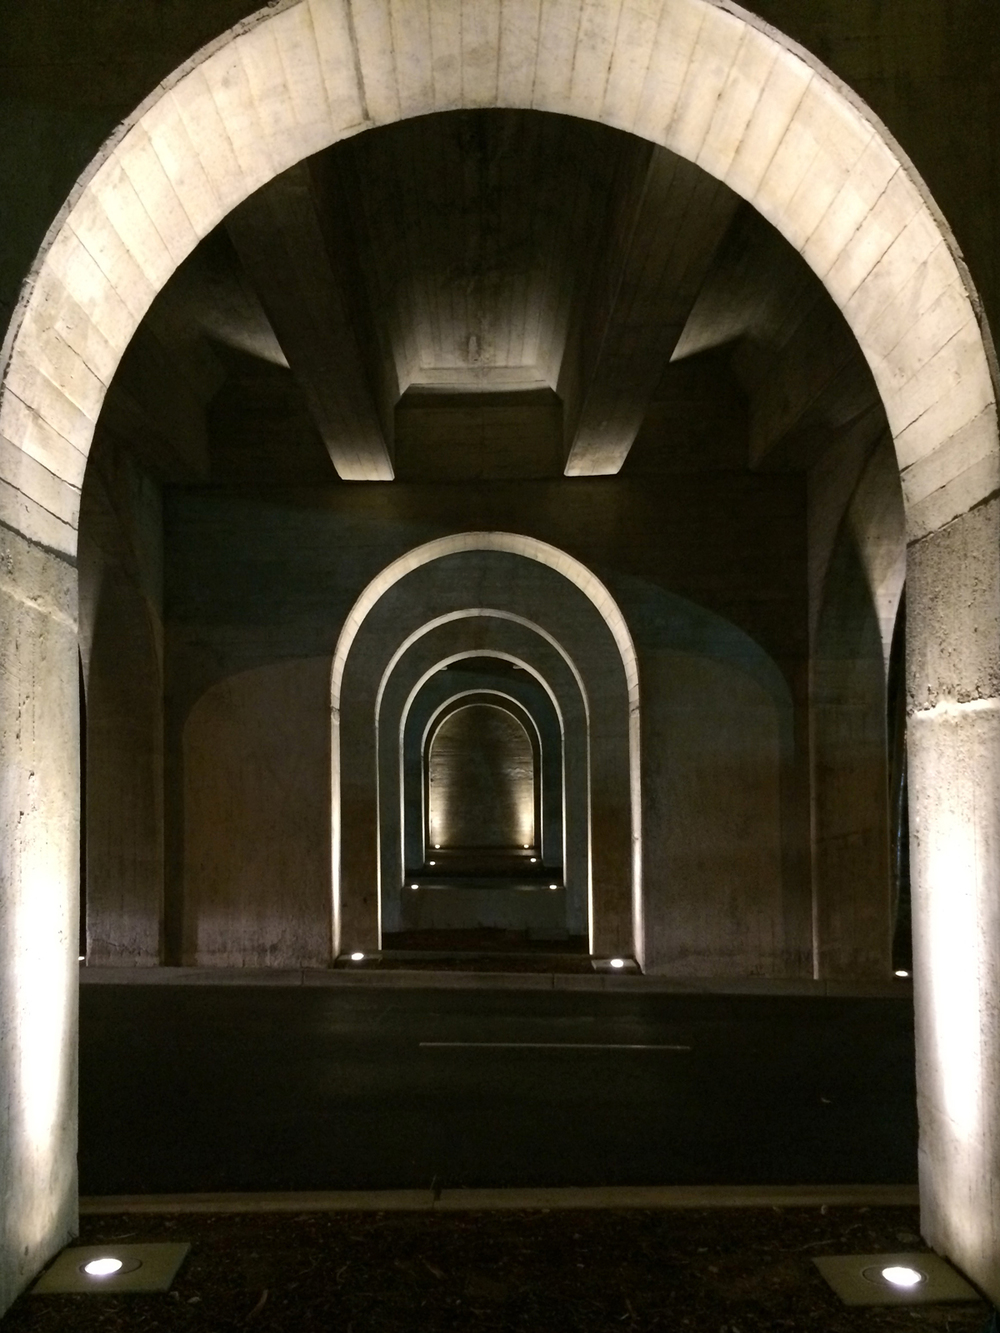 Transverse arches of the bridge with new lighting scheme.